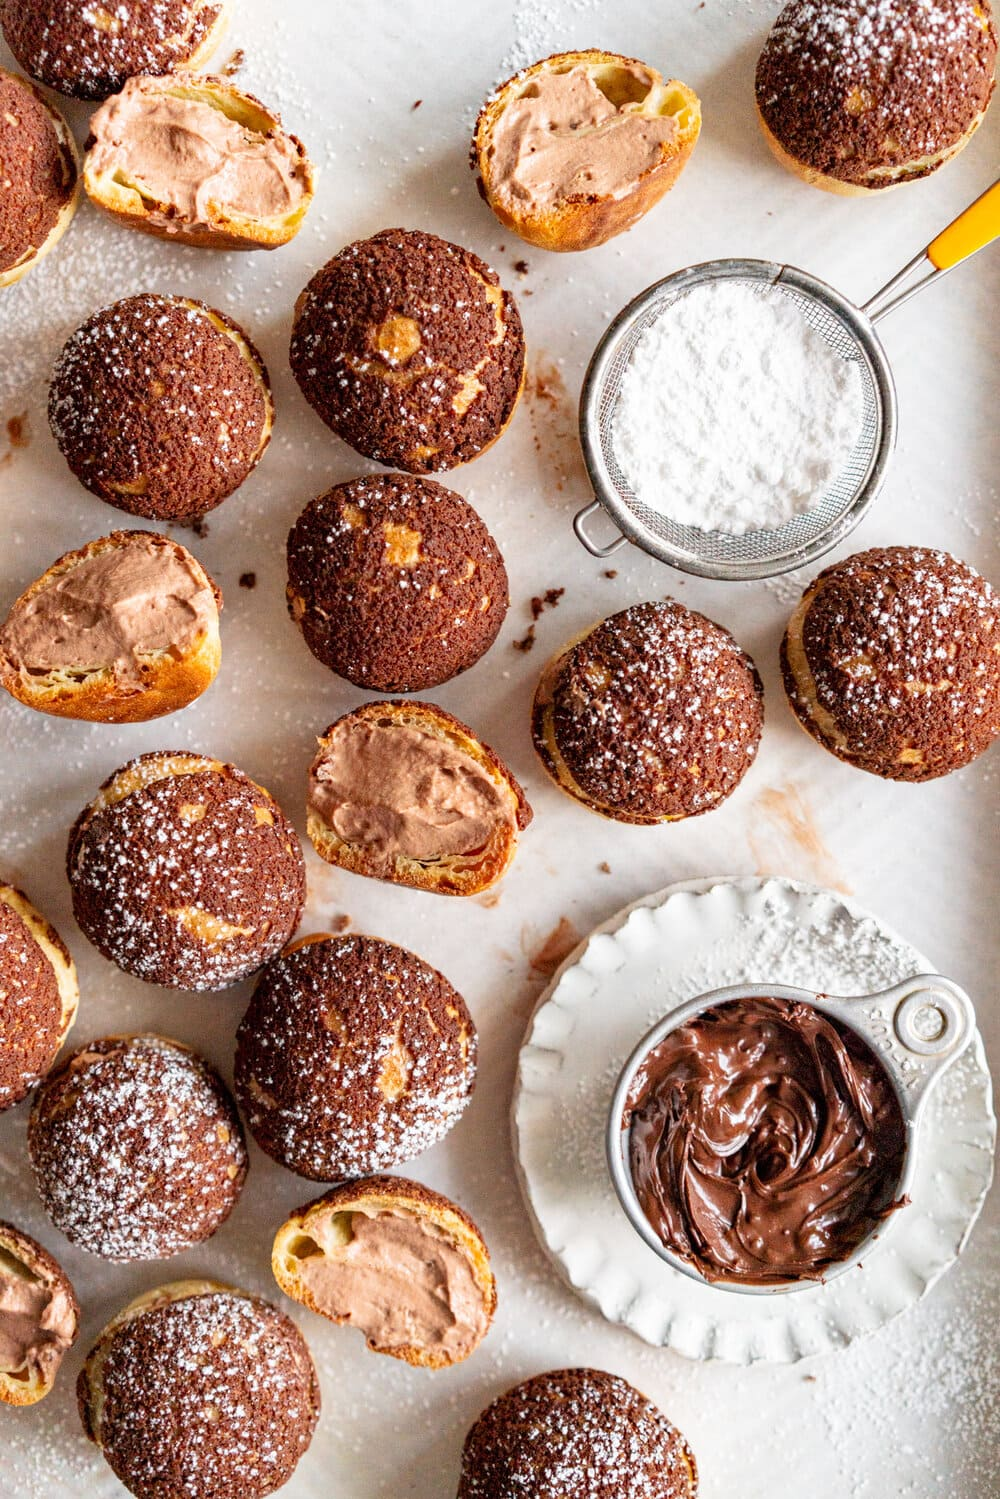 Chocolate Choux au Craquelin with Chocolate Hazelnut Whipped Cream Filling. Rounds of Choux dough are topped with chocolate craquelin and baked to perfection, then filled with silky chocolate hazelnut whipped cream #chouxaucraquelin #creampuffs #chocolatehazelnut